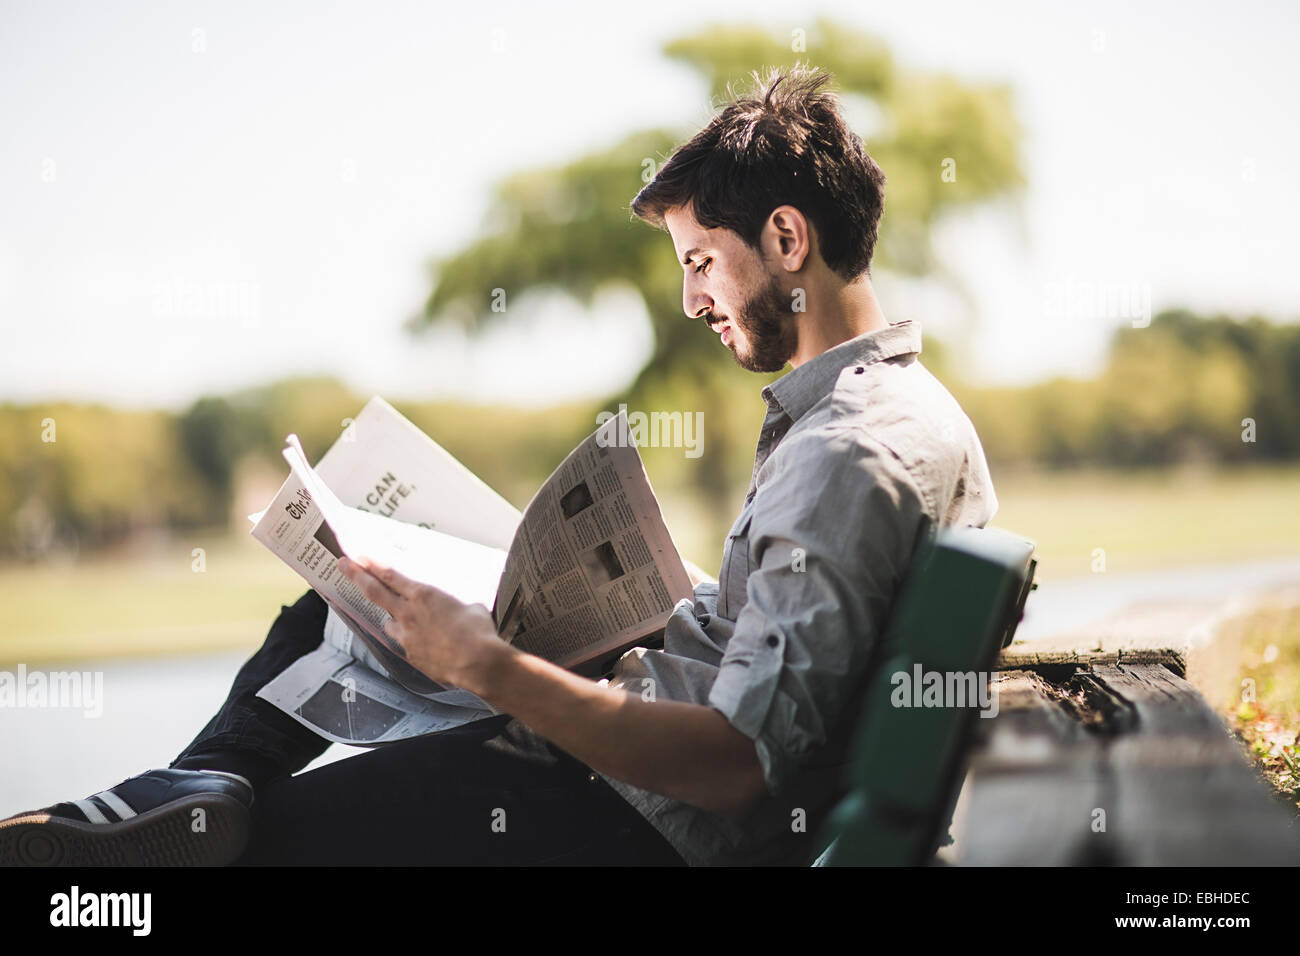 Young man reading newspaper on park bench Photo Stock